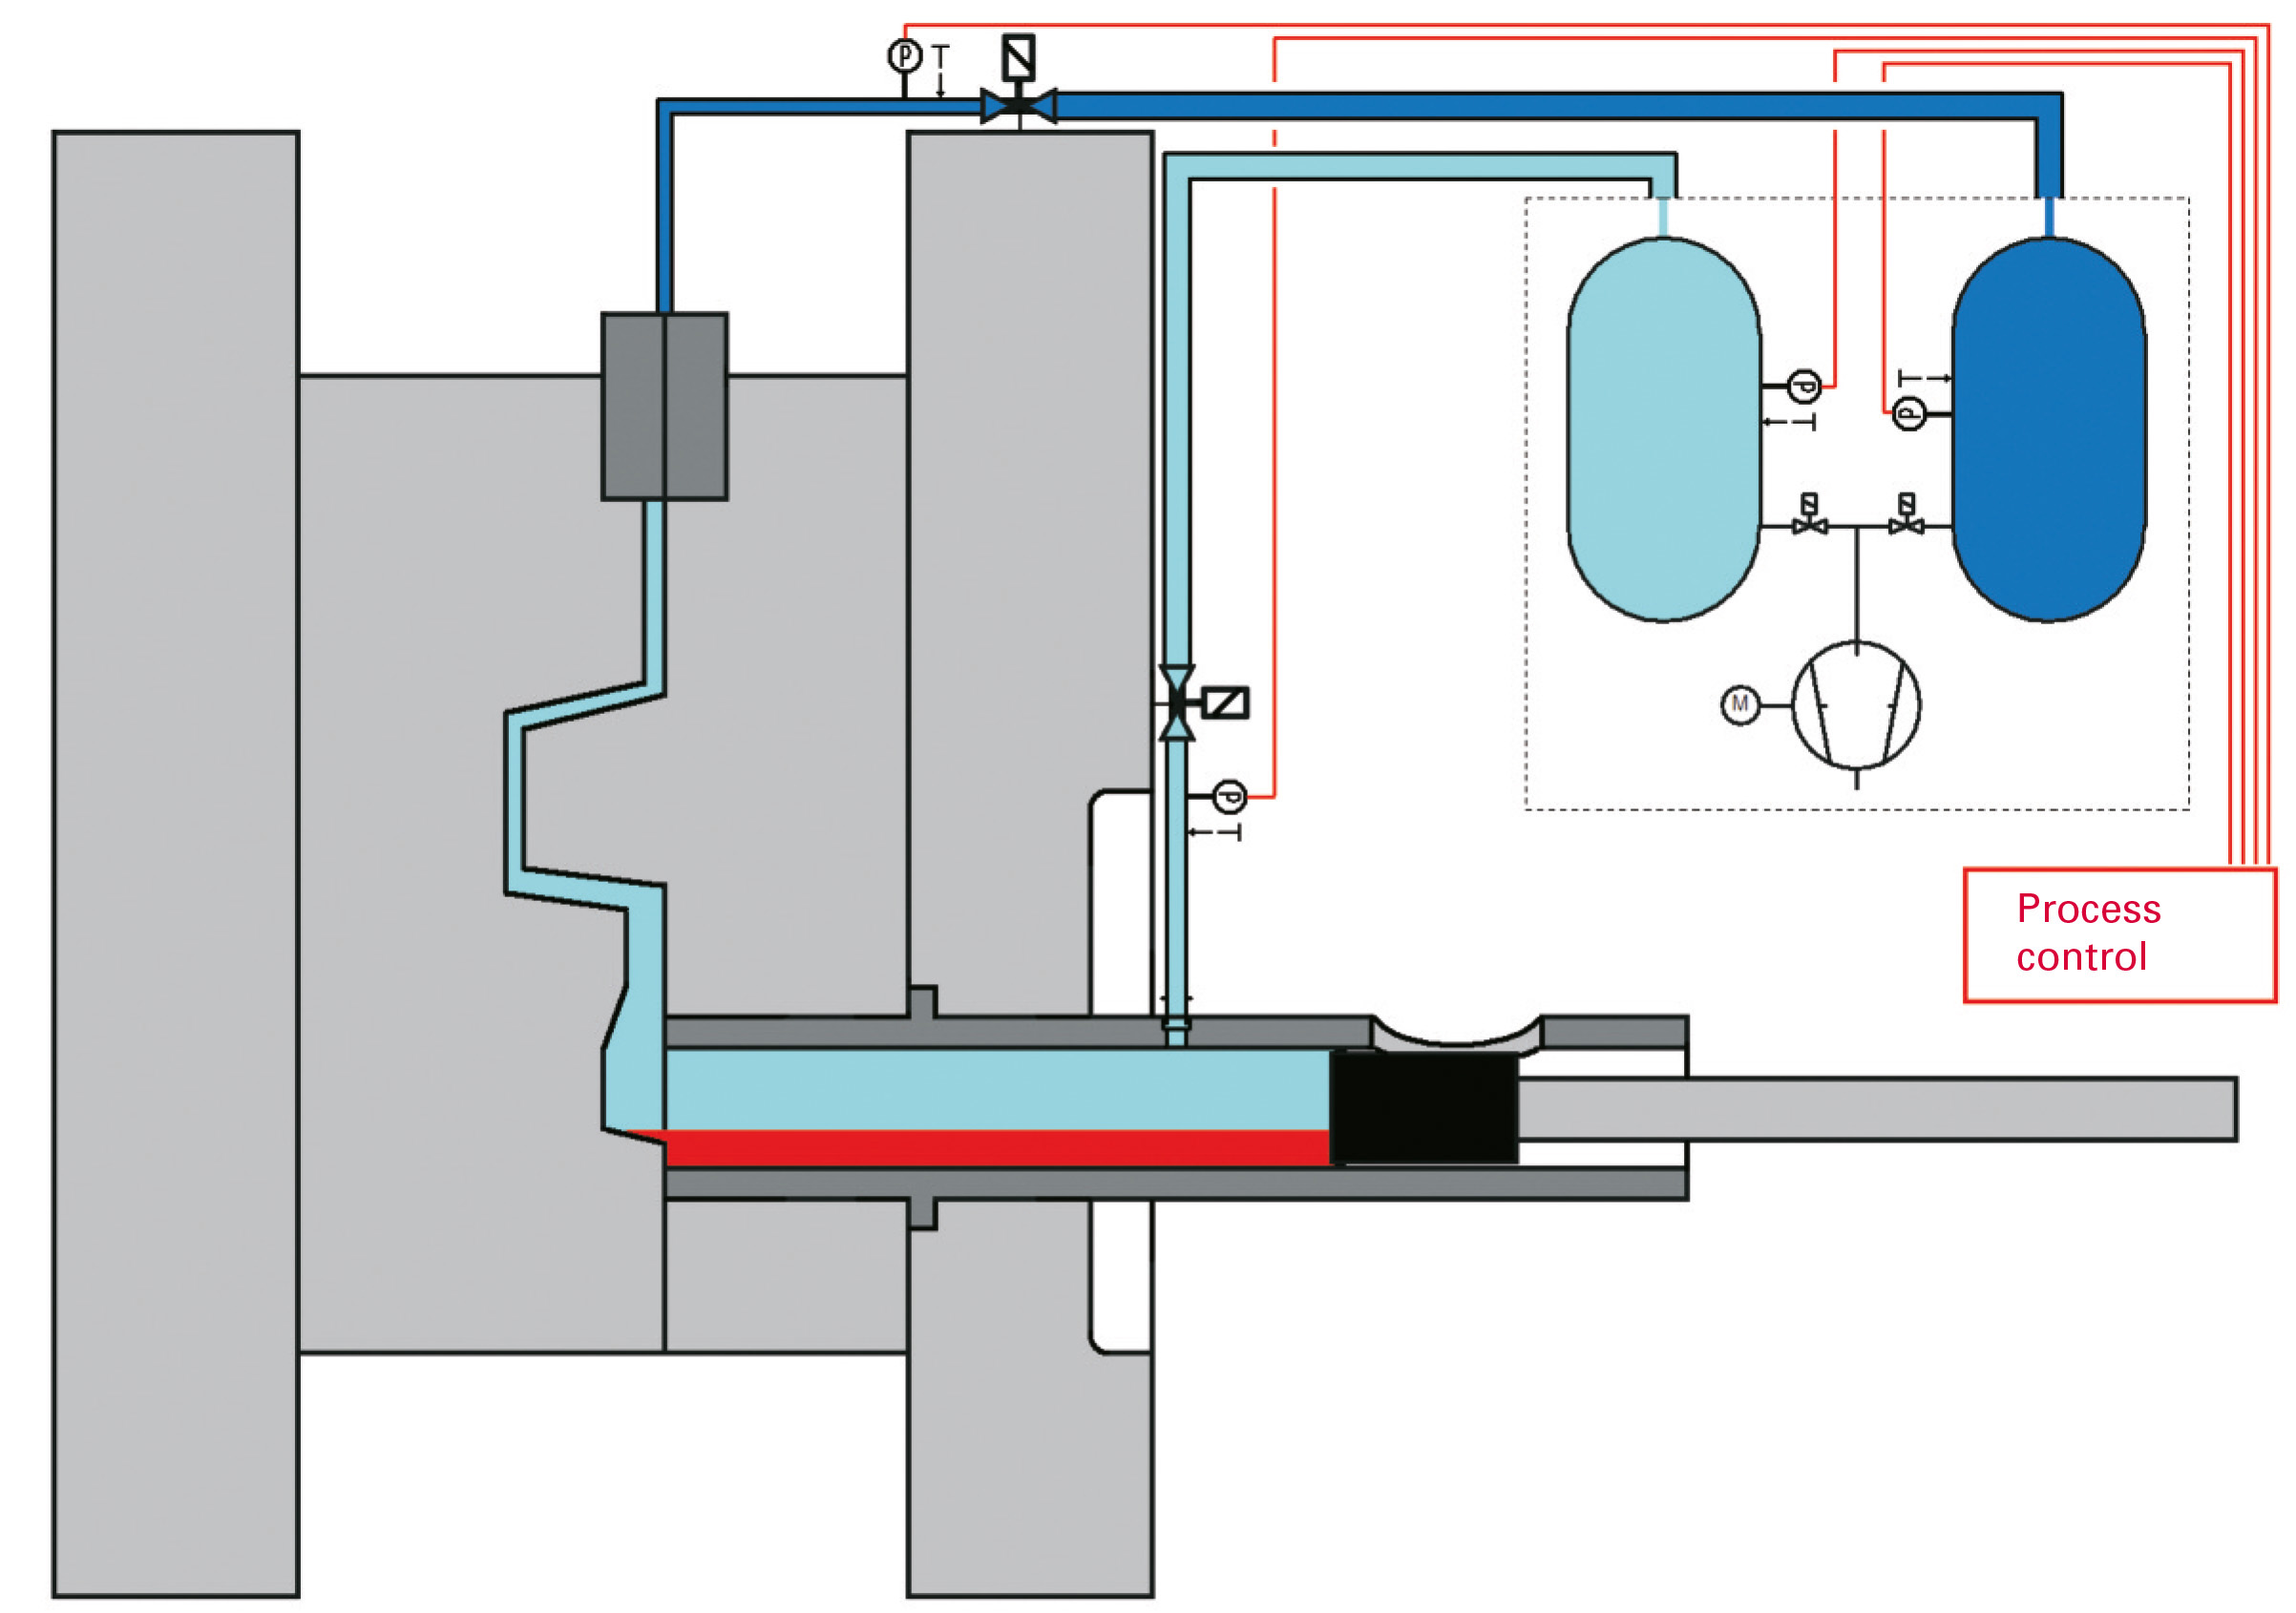 Schematic diagram of a variant of the multi-stage vacuum process